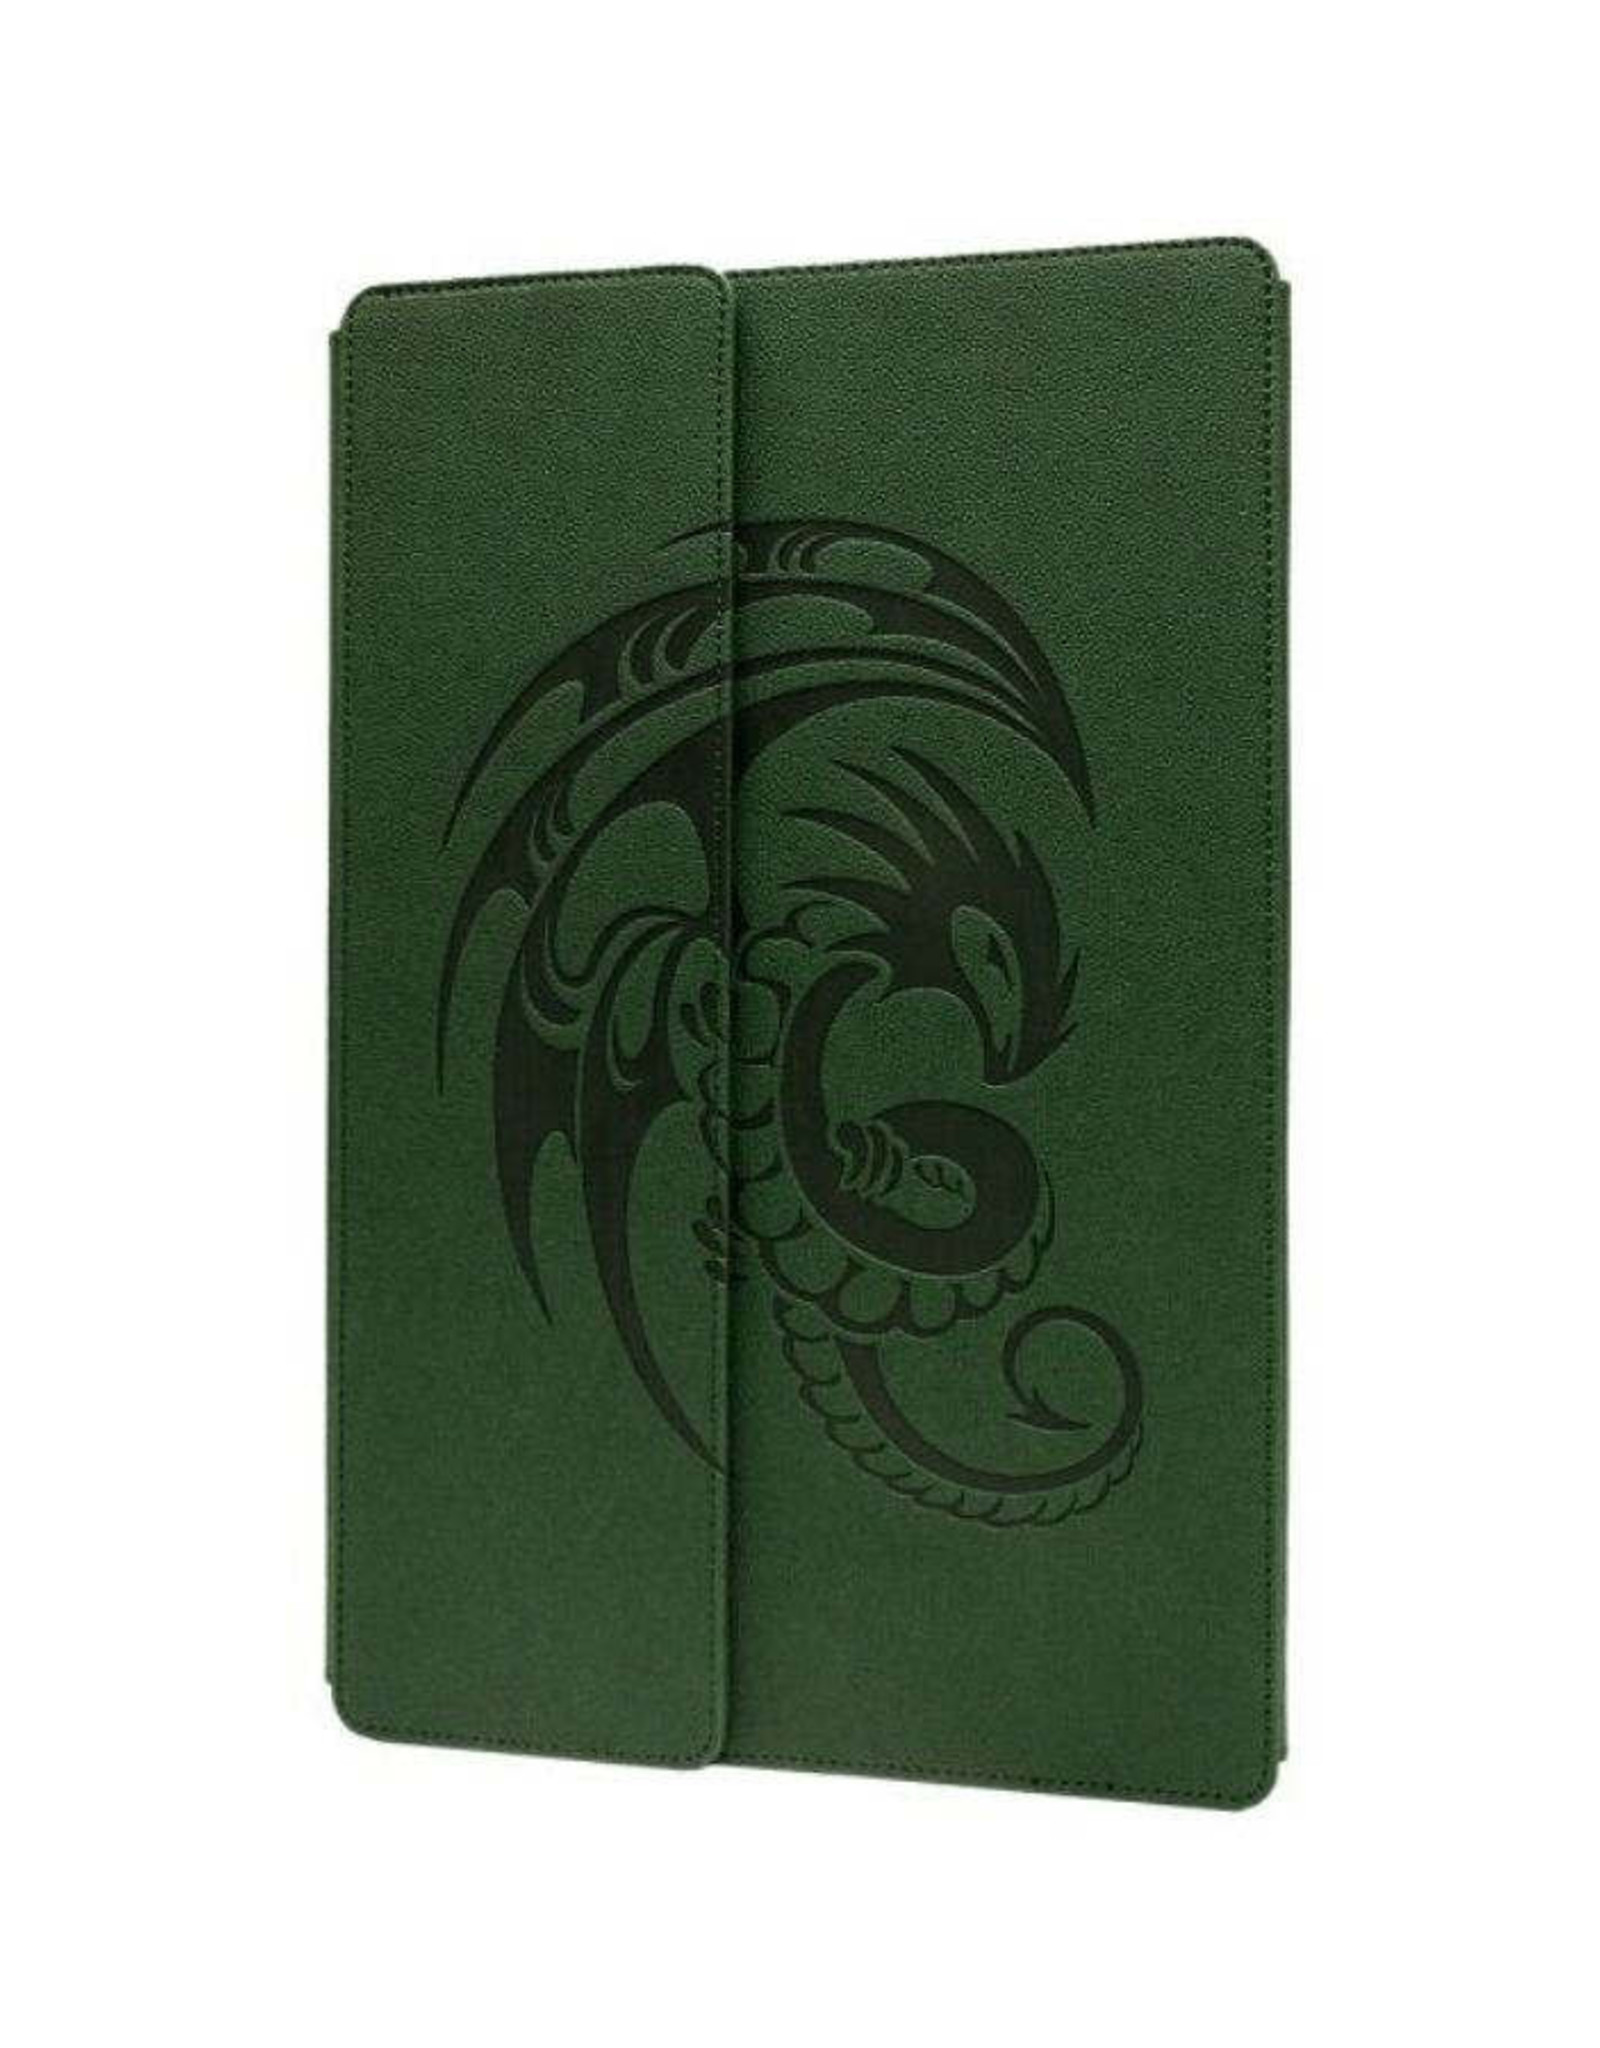 Arcane Tinmen Dragon Shield: Nomad Playmat Forest Green And Black